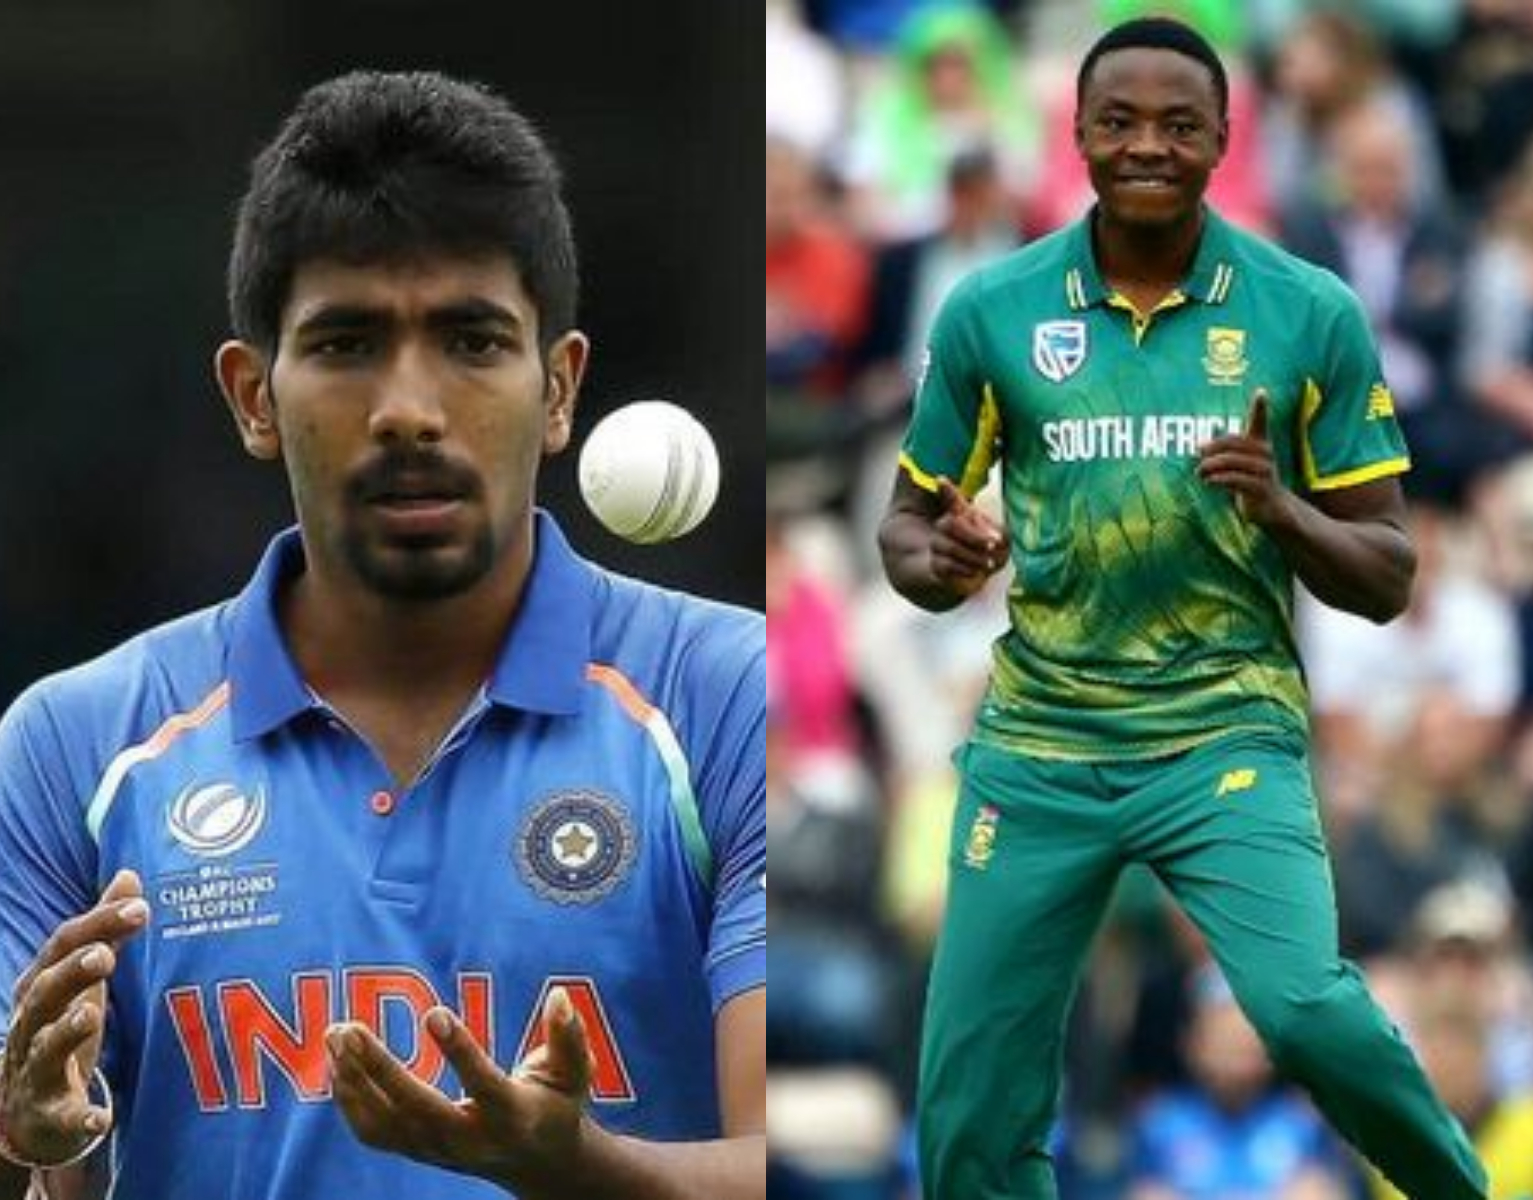 Jasprit Bumrah and Kagiso Rabada form a fearsome fast bowling pair in the 2018 ODI XI